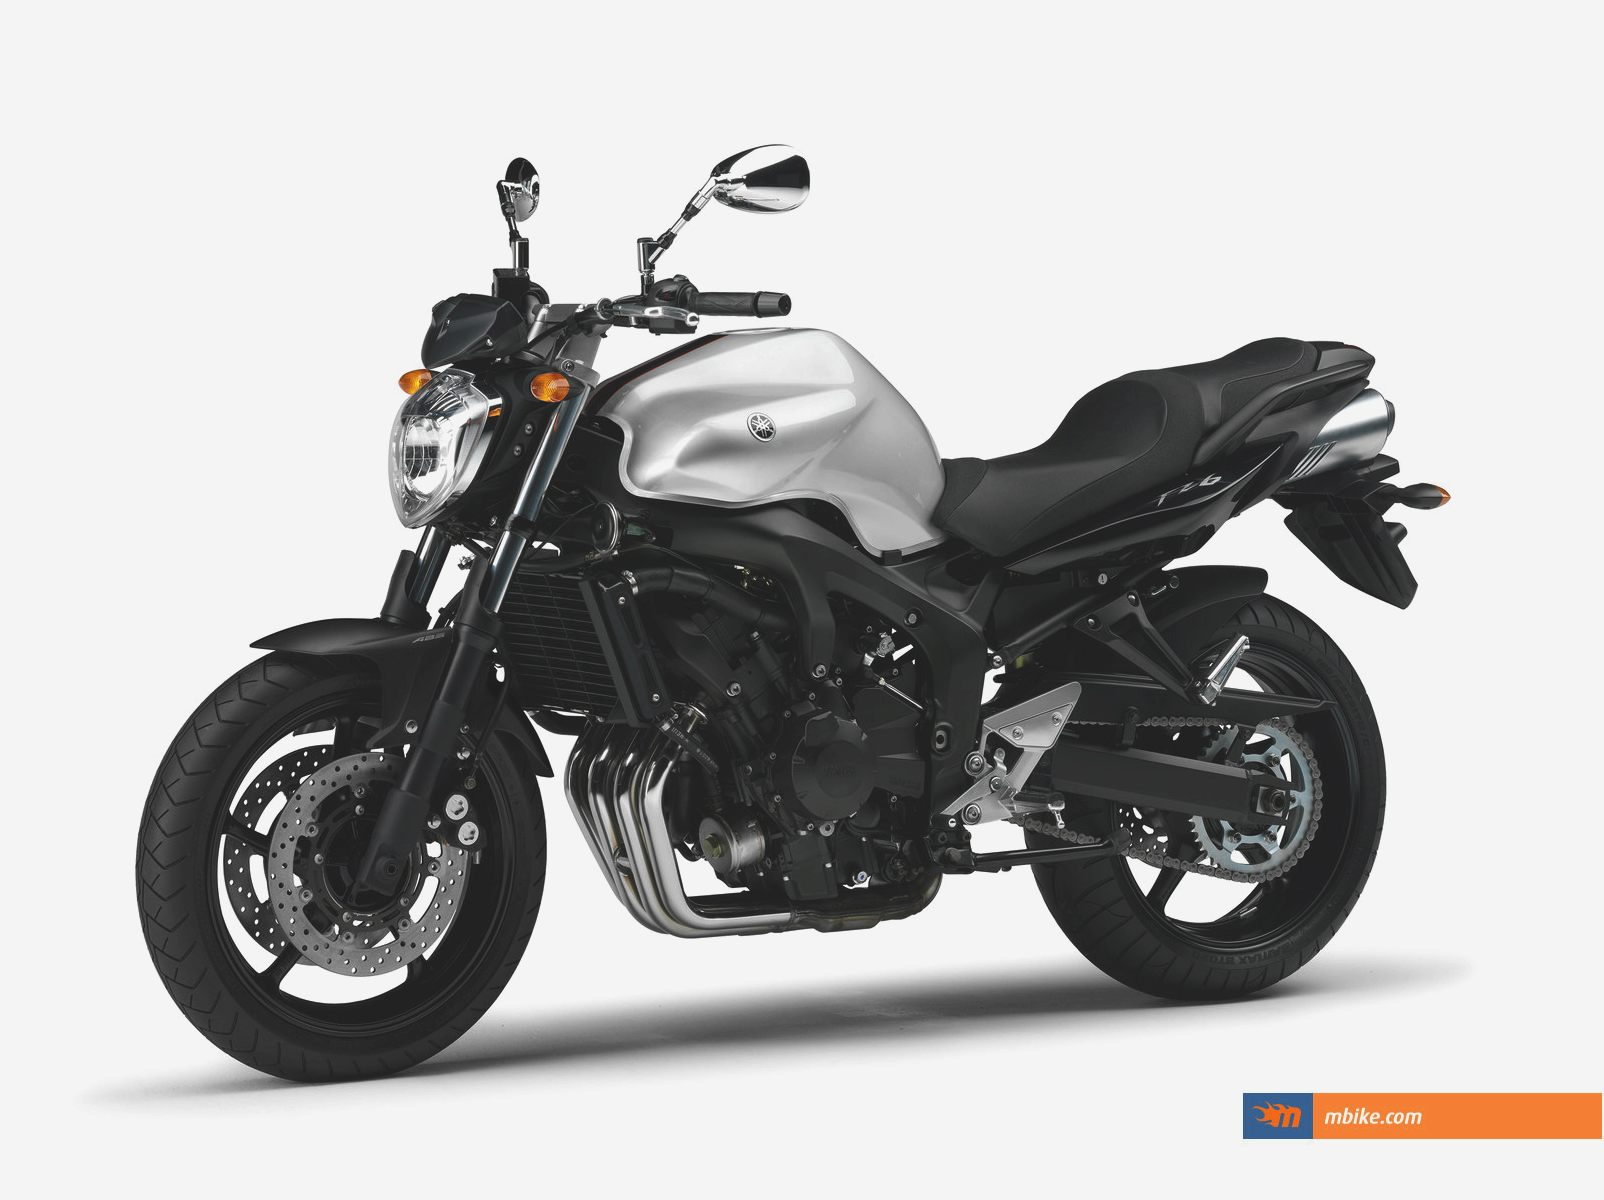 Yamaha FZ 6N S2 ABS 2009 images #91891